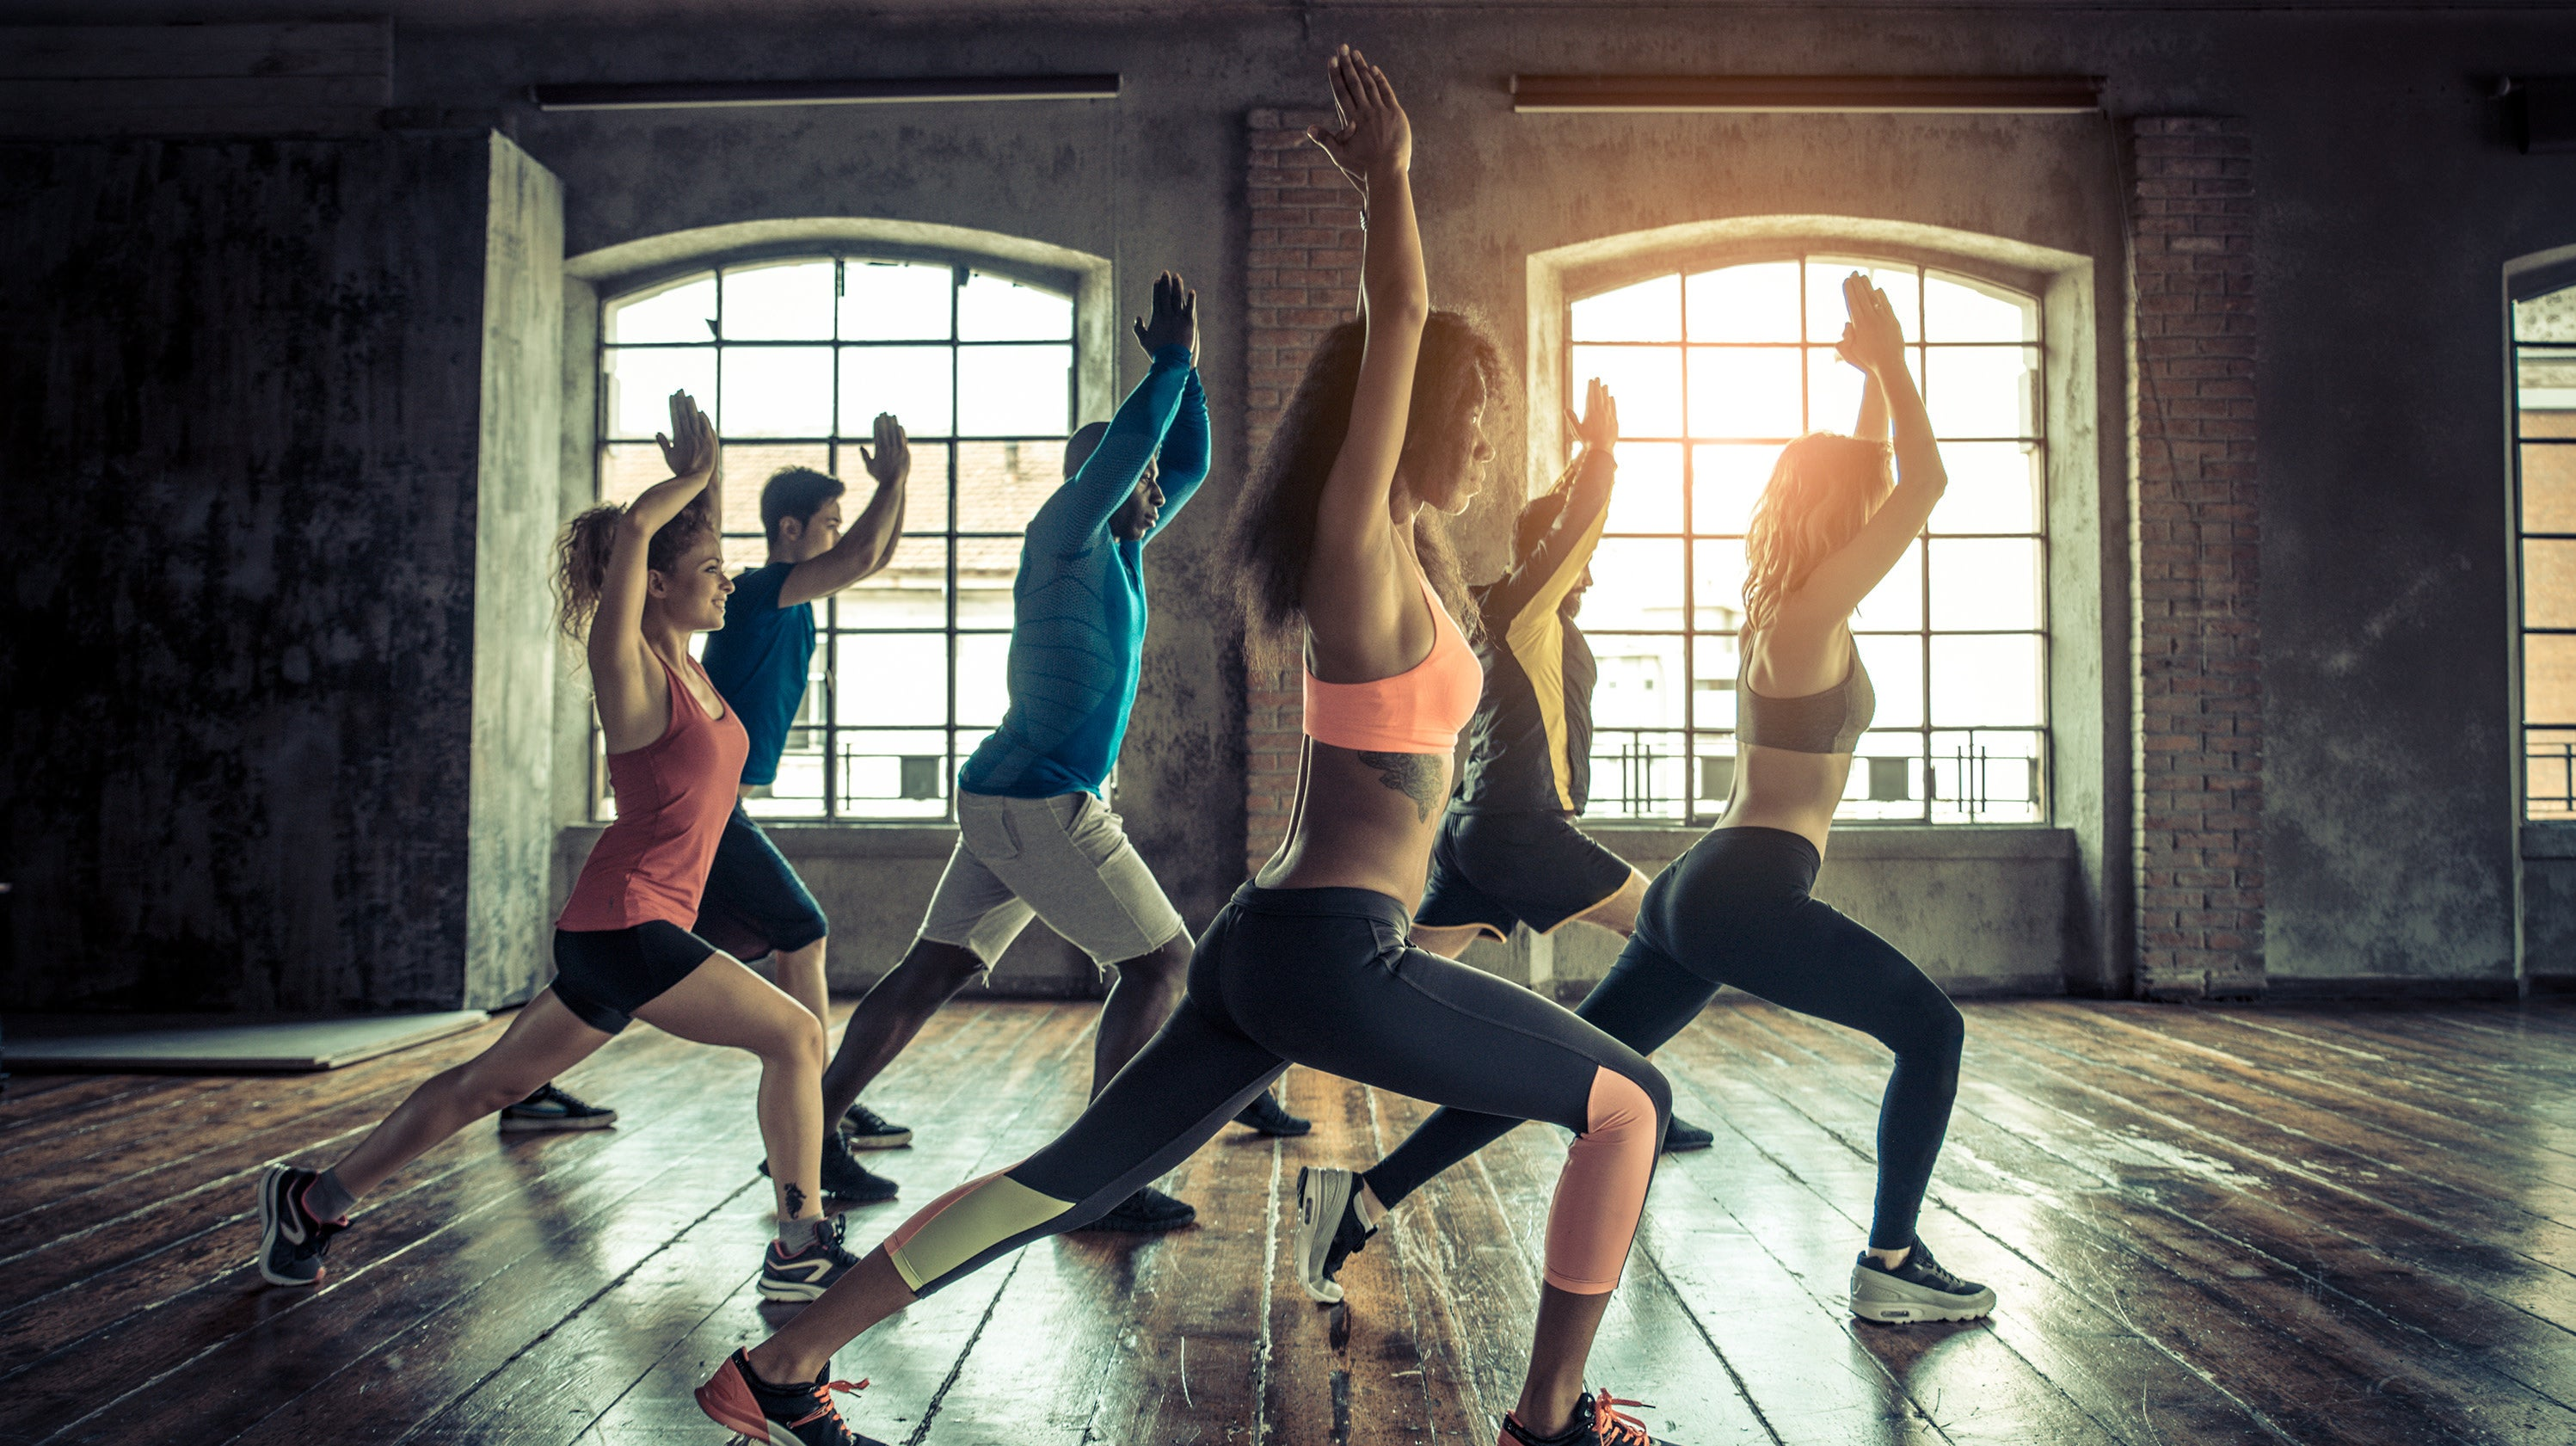 How To Get The Benefits Of A Boutique Fitness Class For Free